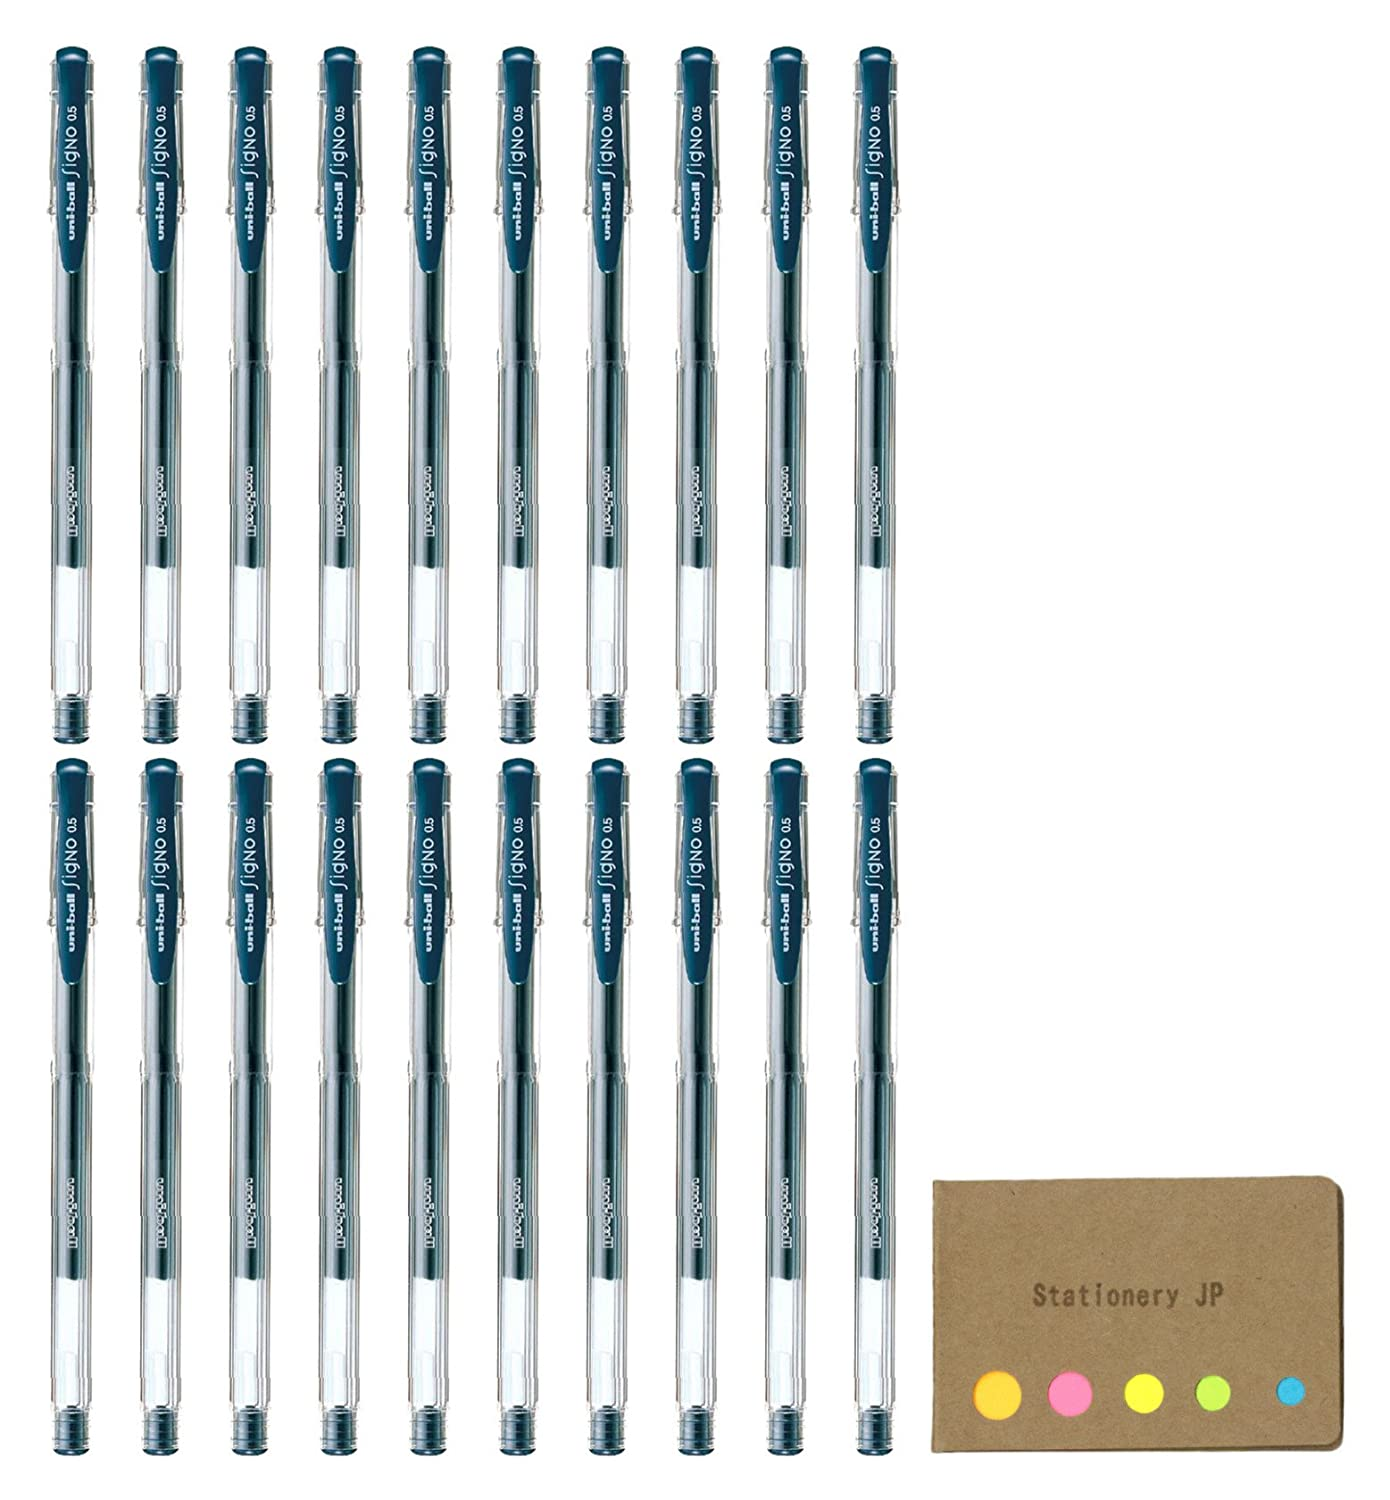 UNI - BALL SIGNO Capped Gelインクペンum-100 Extra Fine Point 0.5 MM,ブルーブラックインク、20-pack、付箋値設定 B07D53QH6S